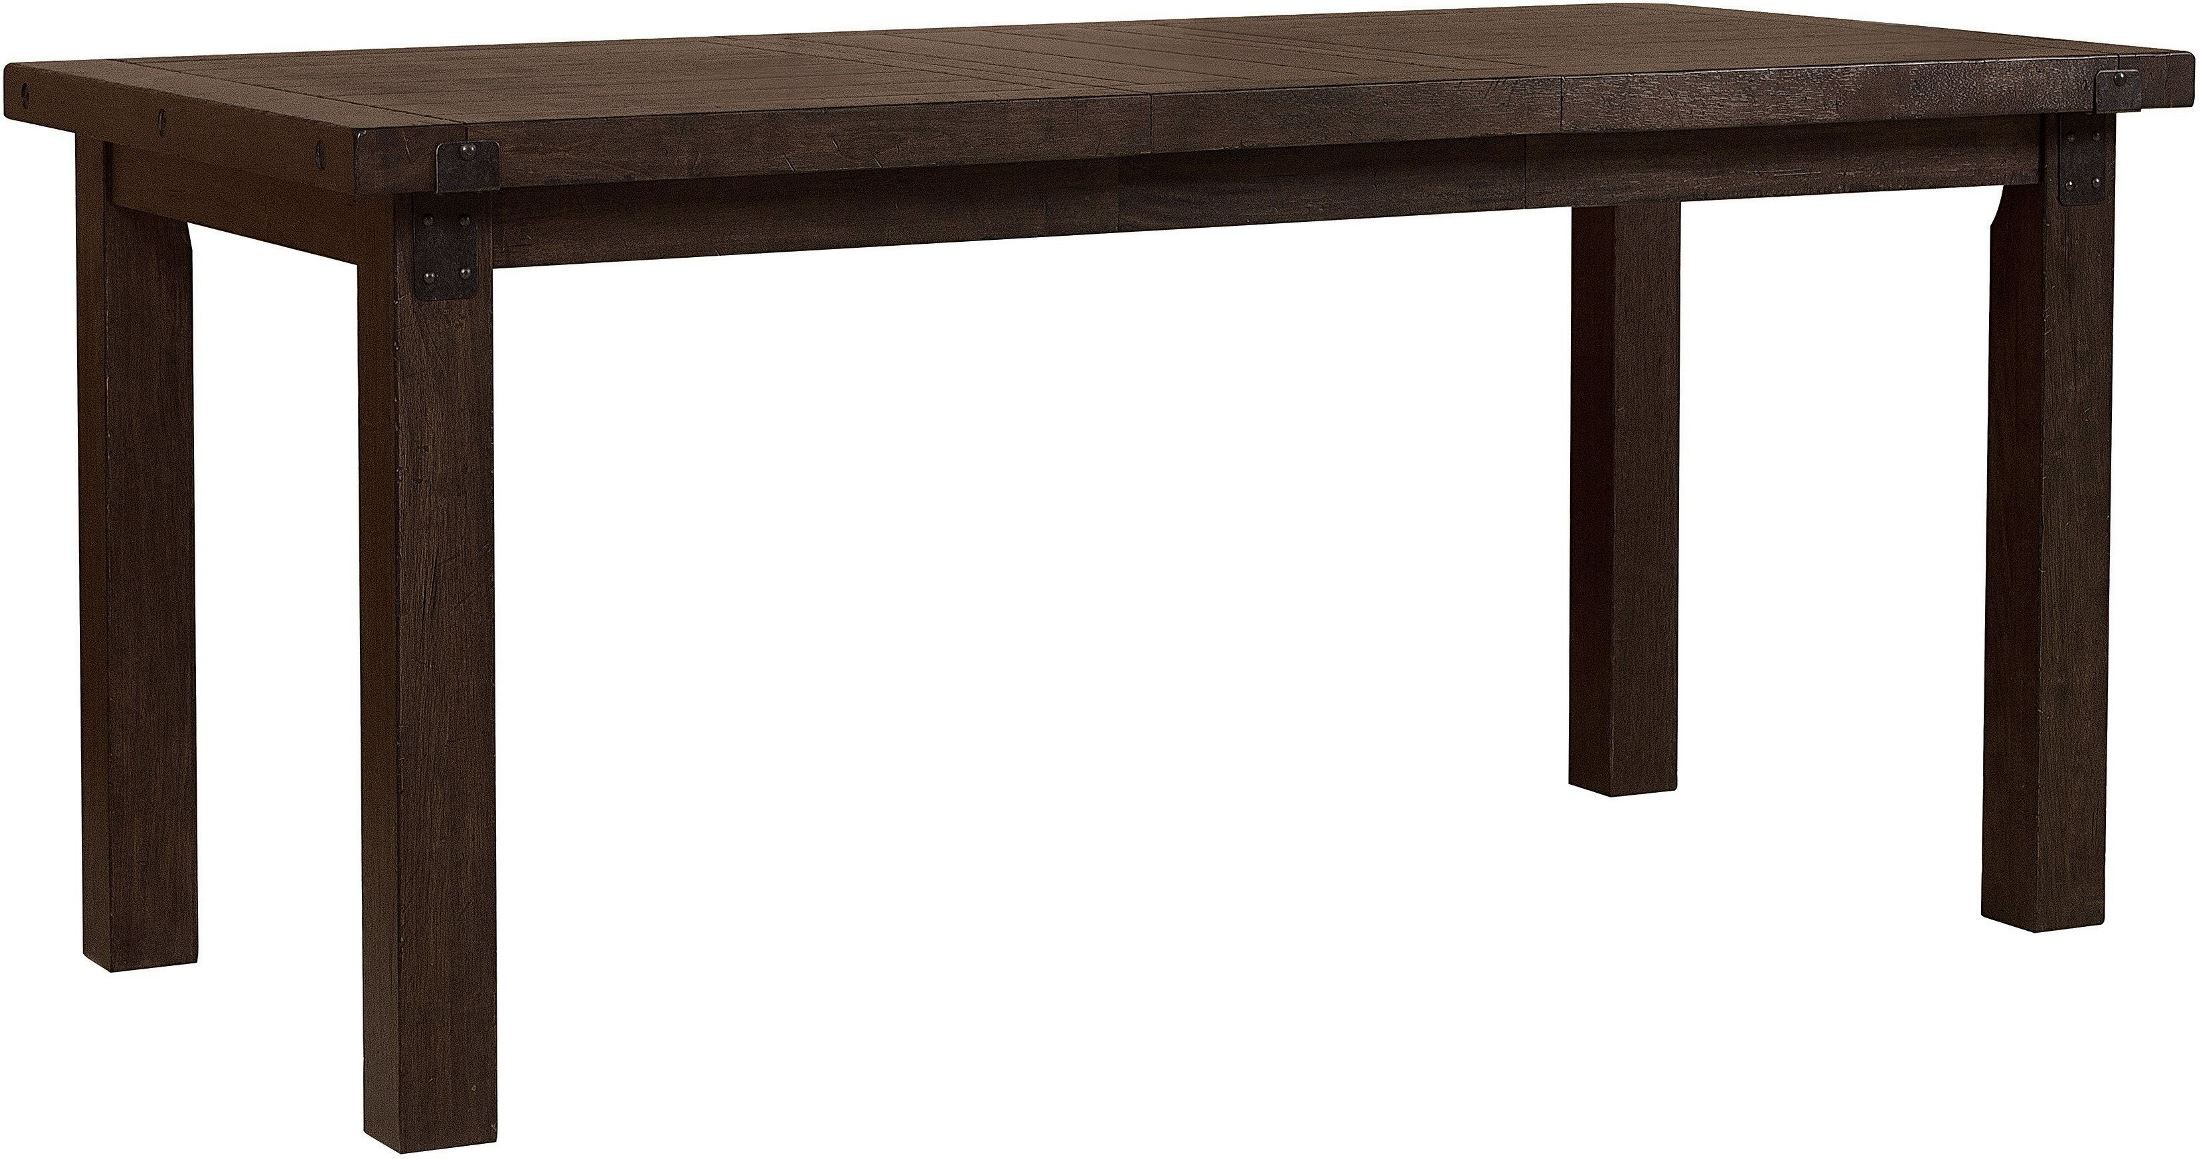 Fulton St Brown Rectangular Counter Height Dining Table